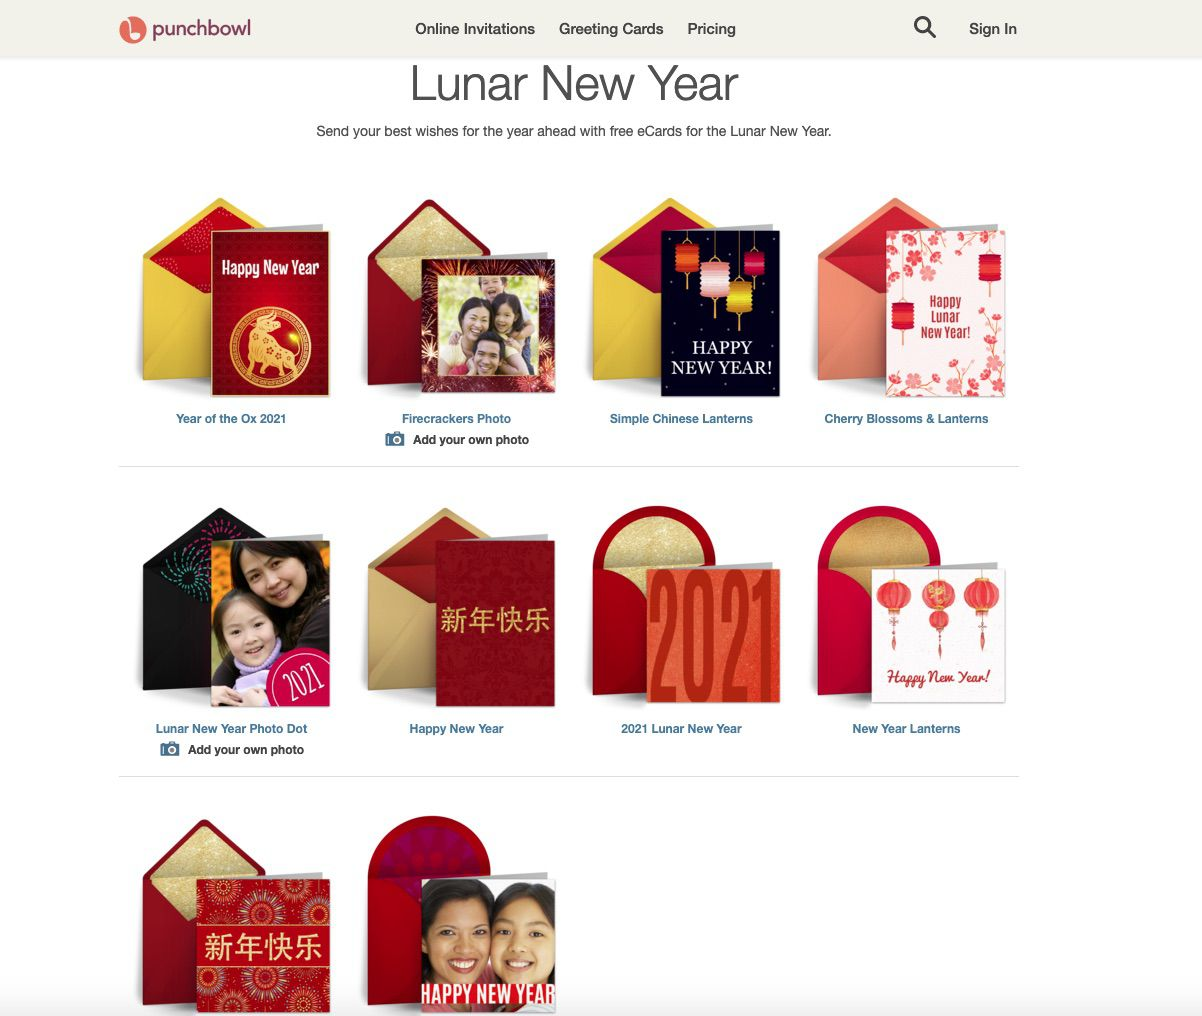 Punchbowl Lunar New Year e-card offerings